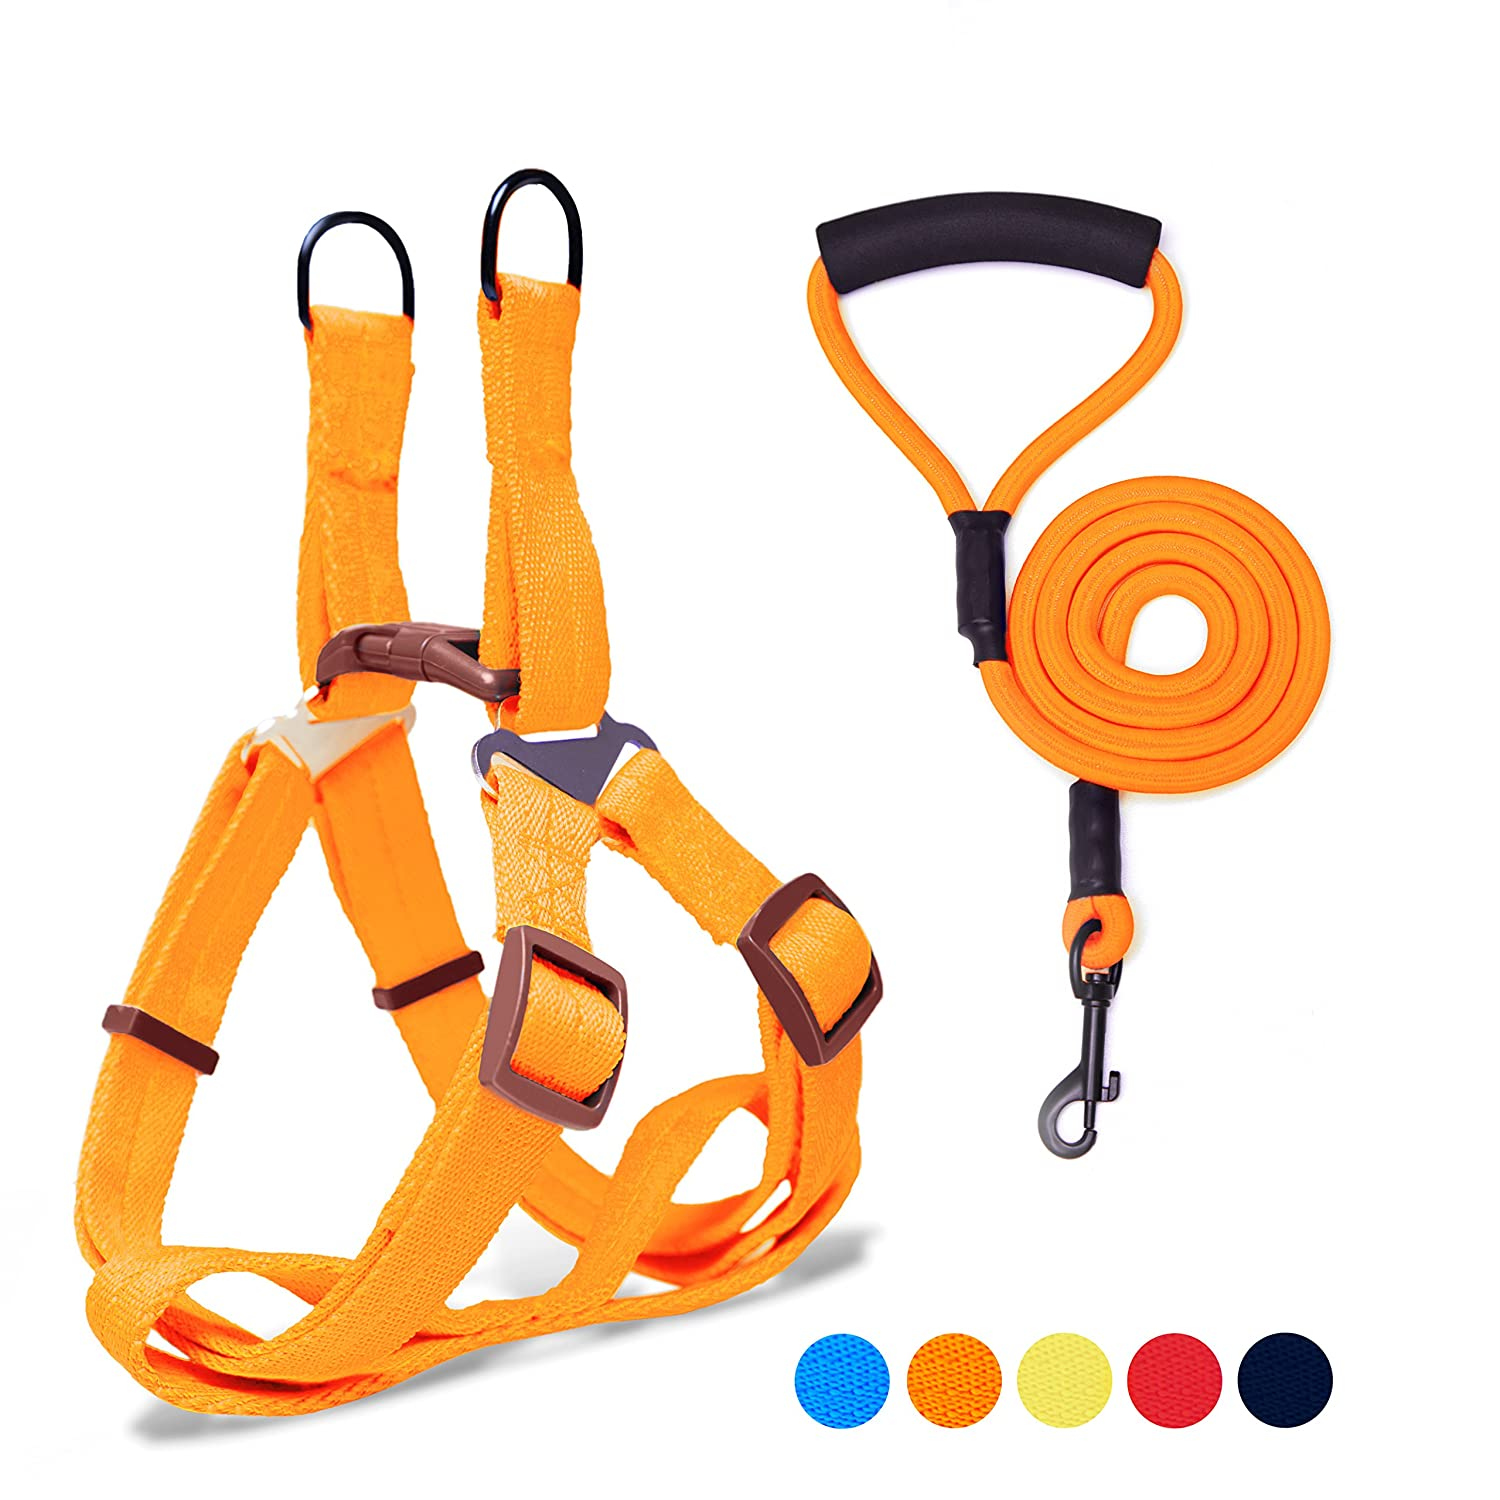 orange S(12''-16'' Chest Girth) orange S(12''-16'' Chest Girth) Adjustable Dog Harness Anti-Twist Dog Leash Set for Small Medium Large Dogs, Soft and Durable Vest Harness Leash for Daily Training Walking Running and Easy Control